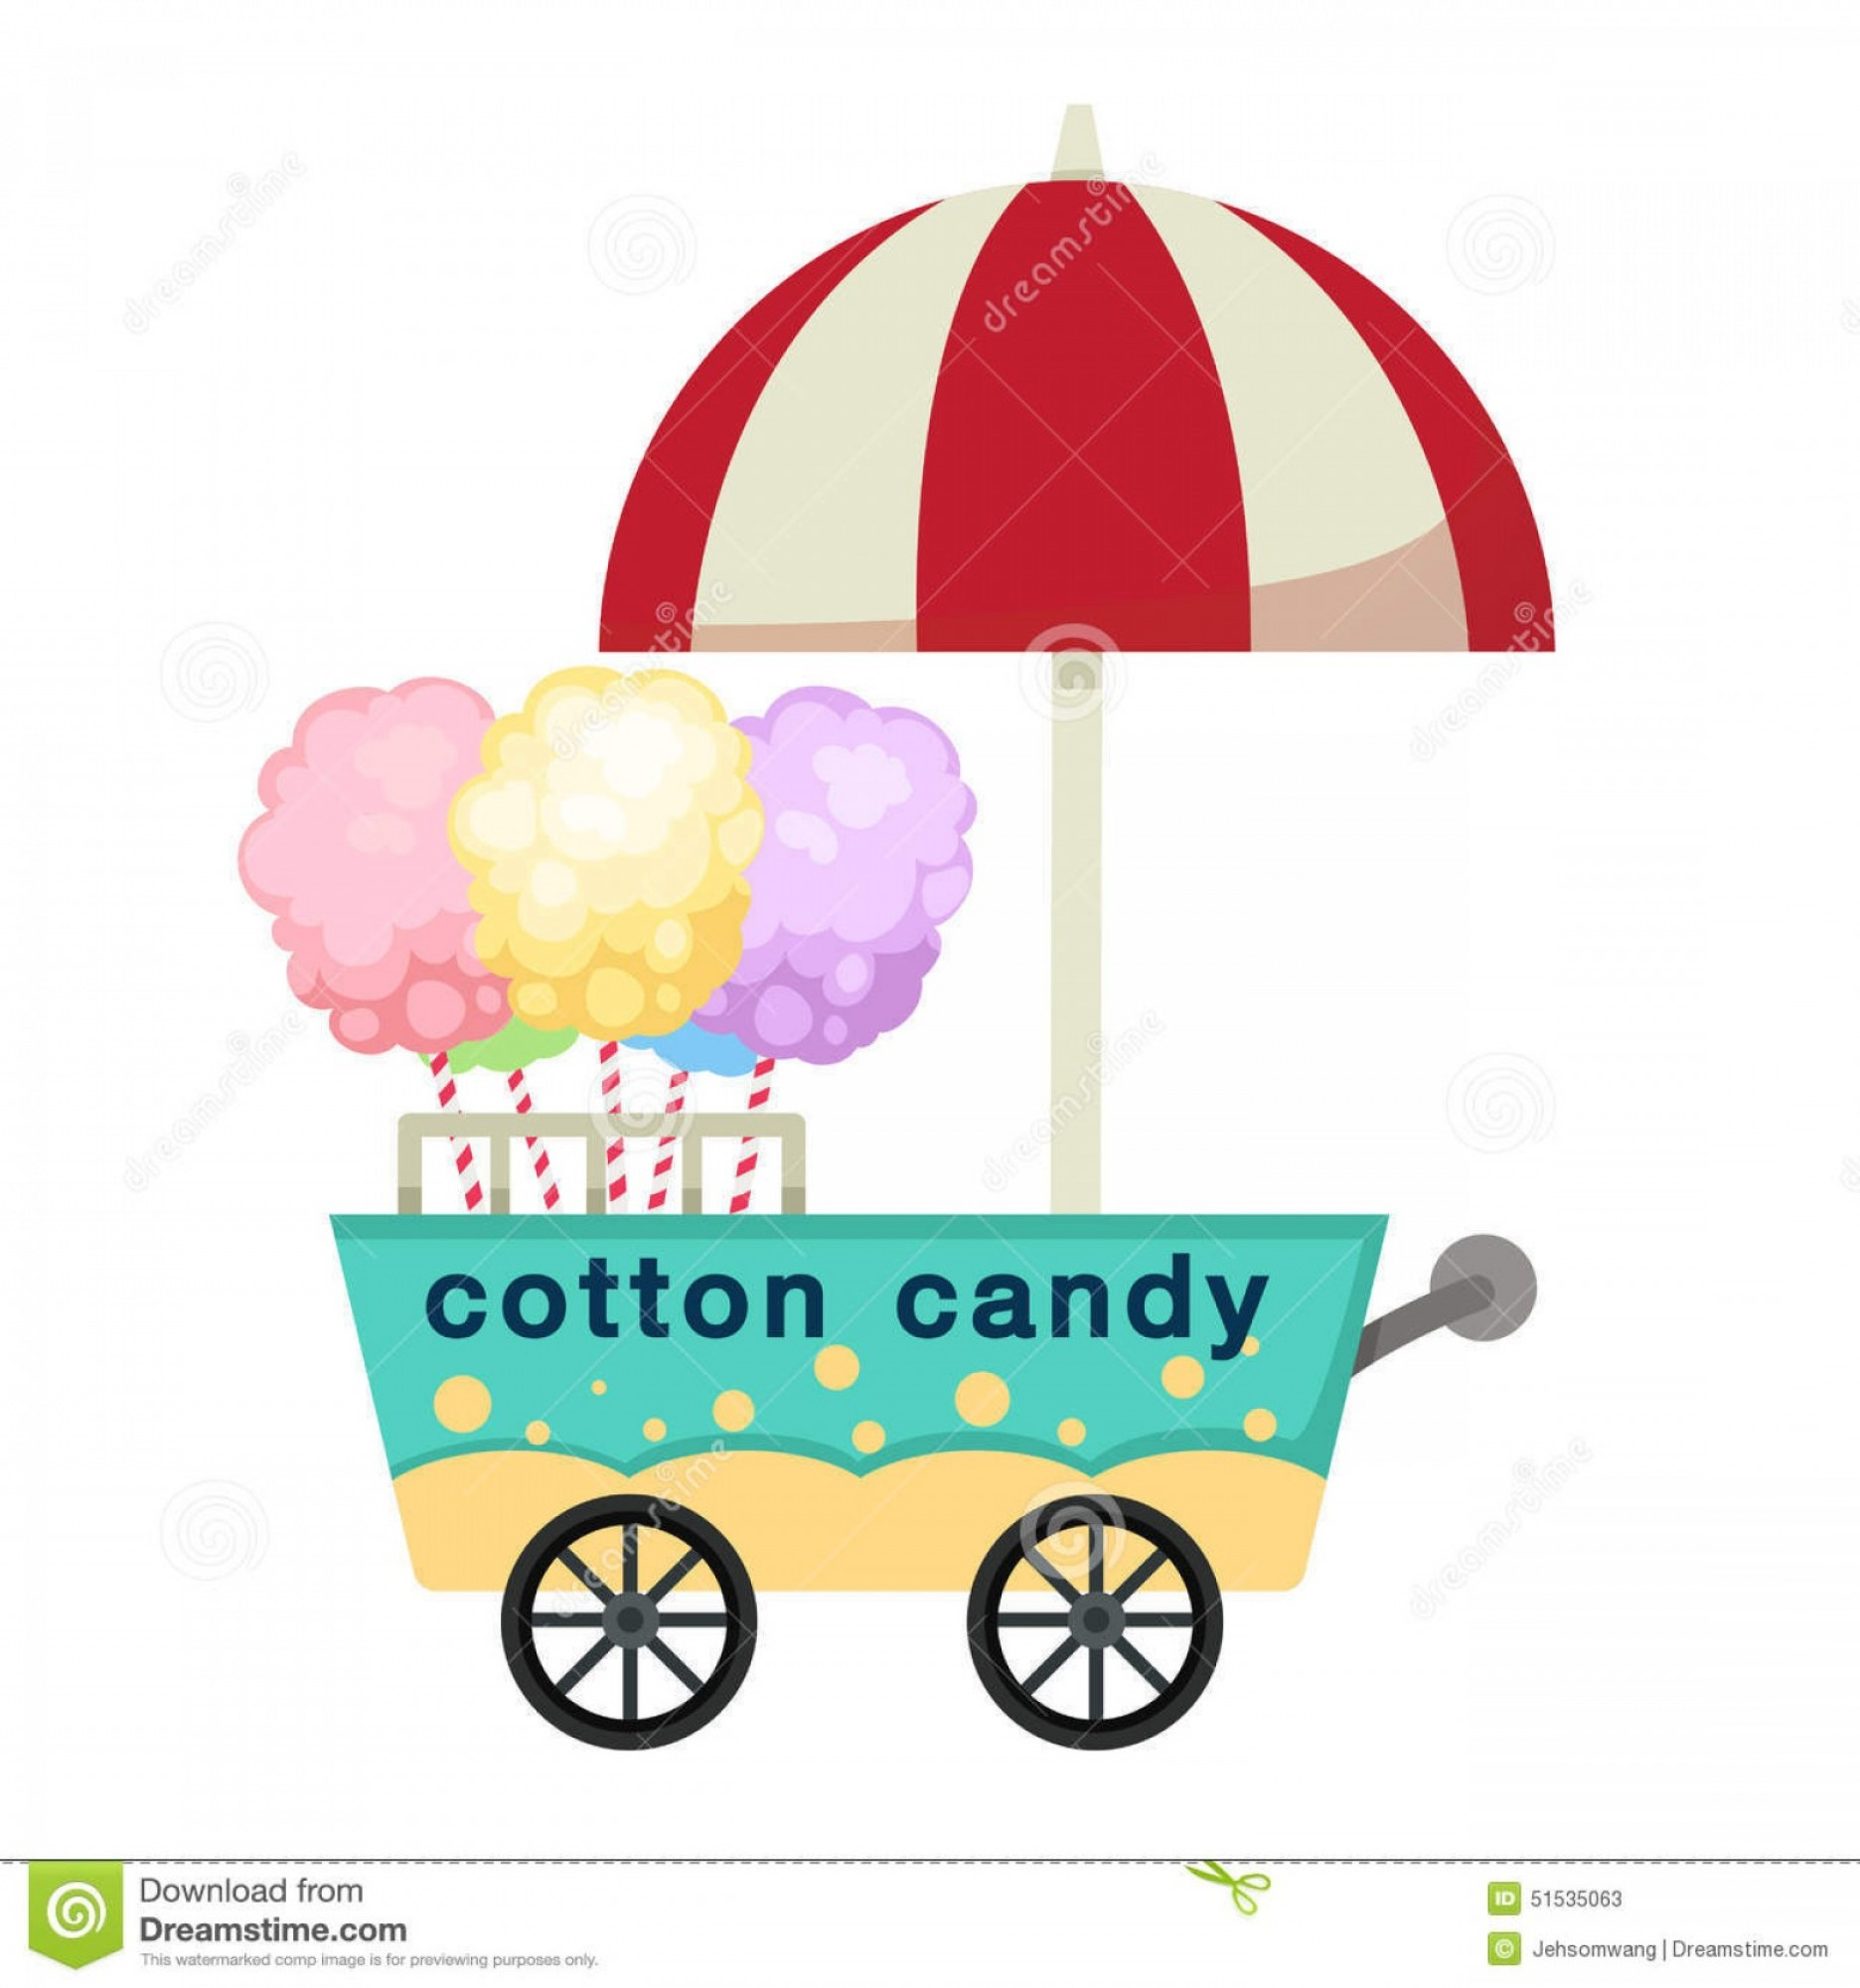 Cotton Vector Graphic: Stock Illustration Cart Stall Cotton Candy Vector Illustration White Background Image